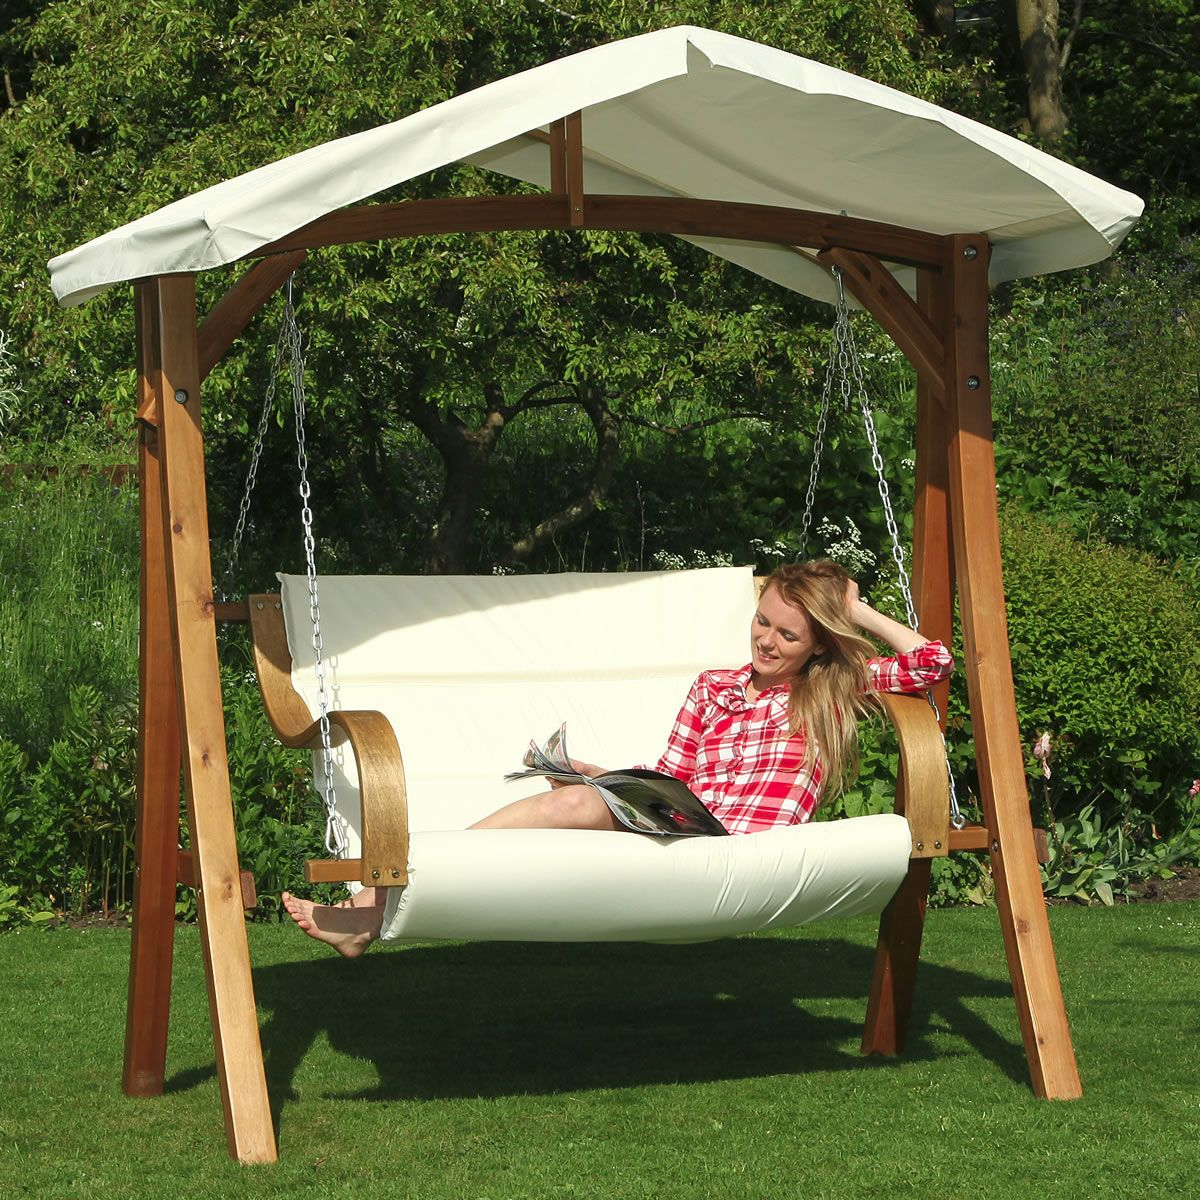 Swing Chair With Canopy Backyard Furniture Patio Swing Outdoor